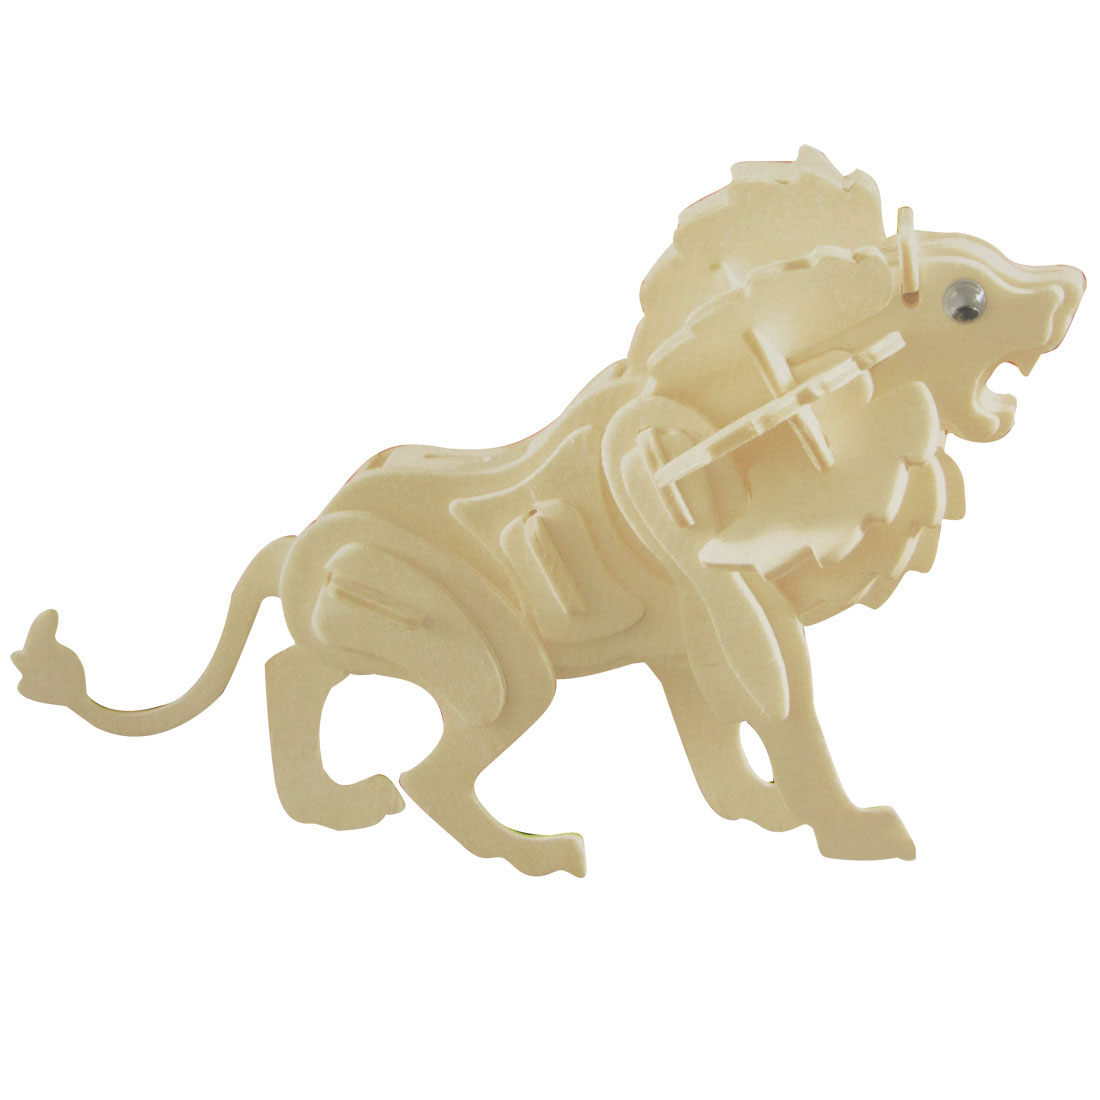 Lion Model Woodcraft Wooden Construction Kit Intelligence Toy